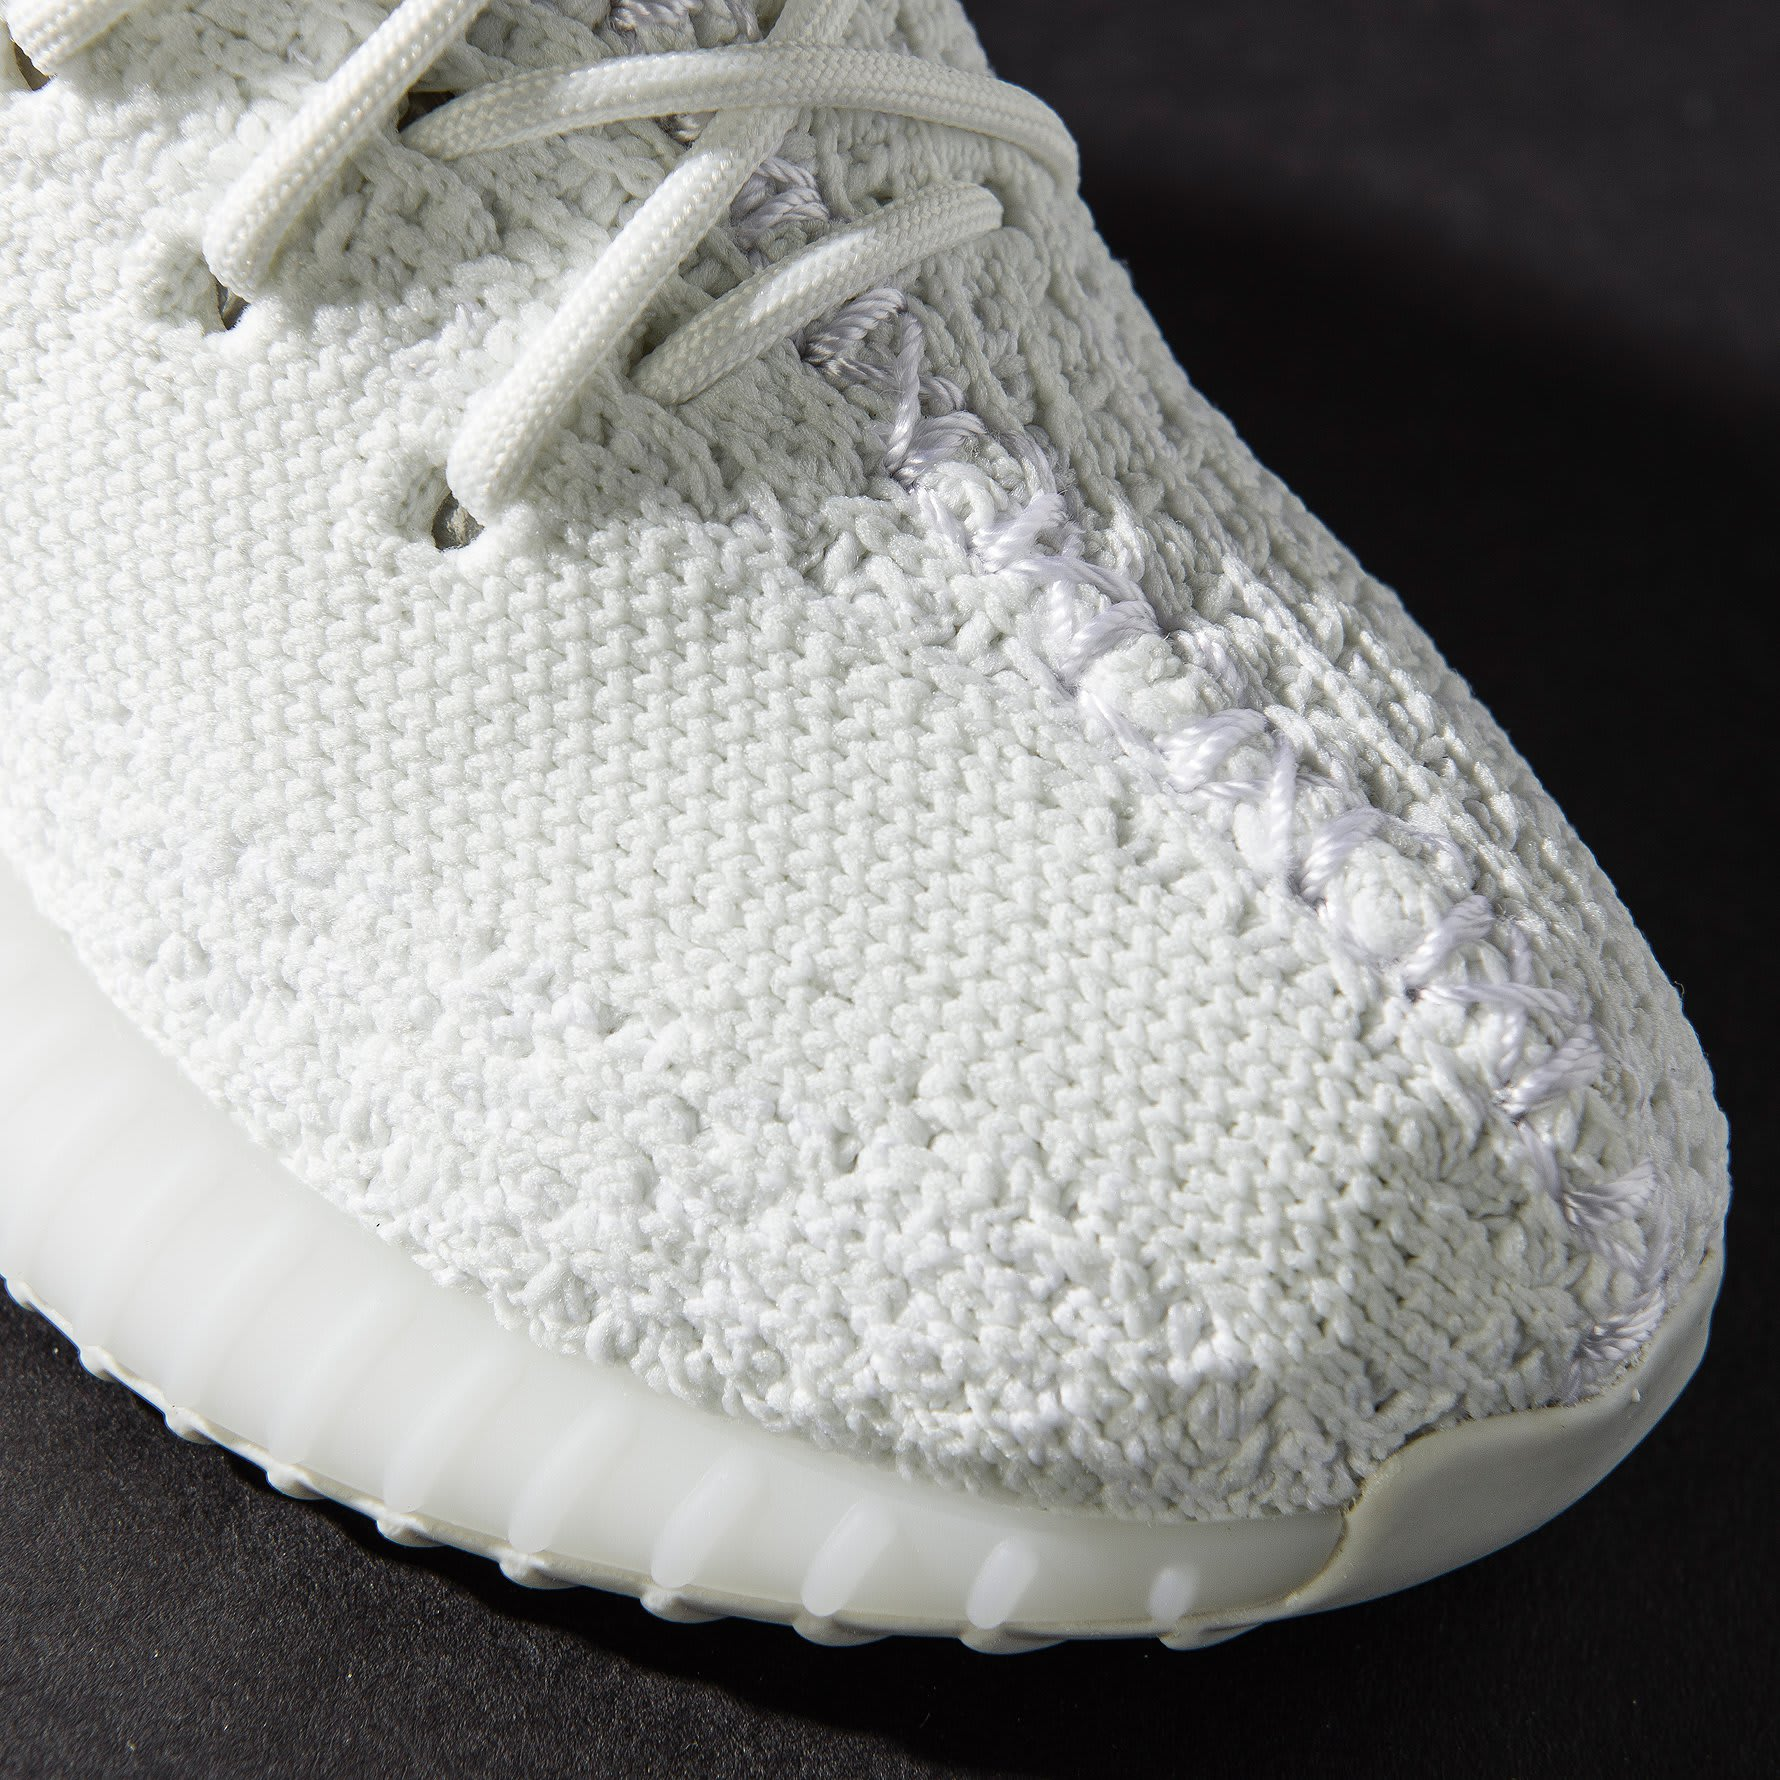 Where to Buy Cream White adidas Yeezy Boost 350 V2 SBD